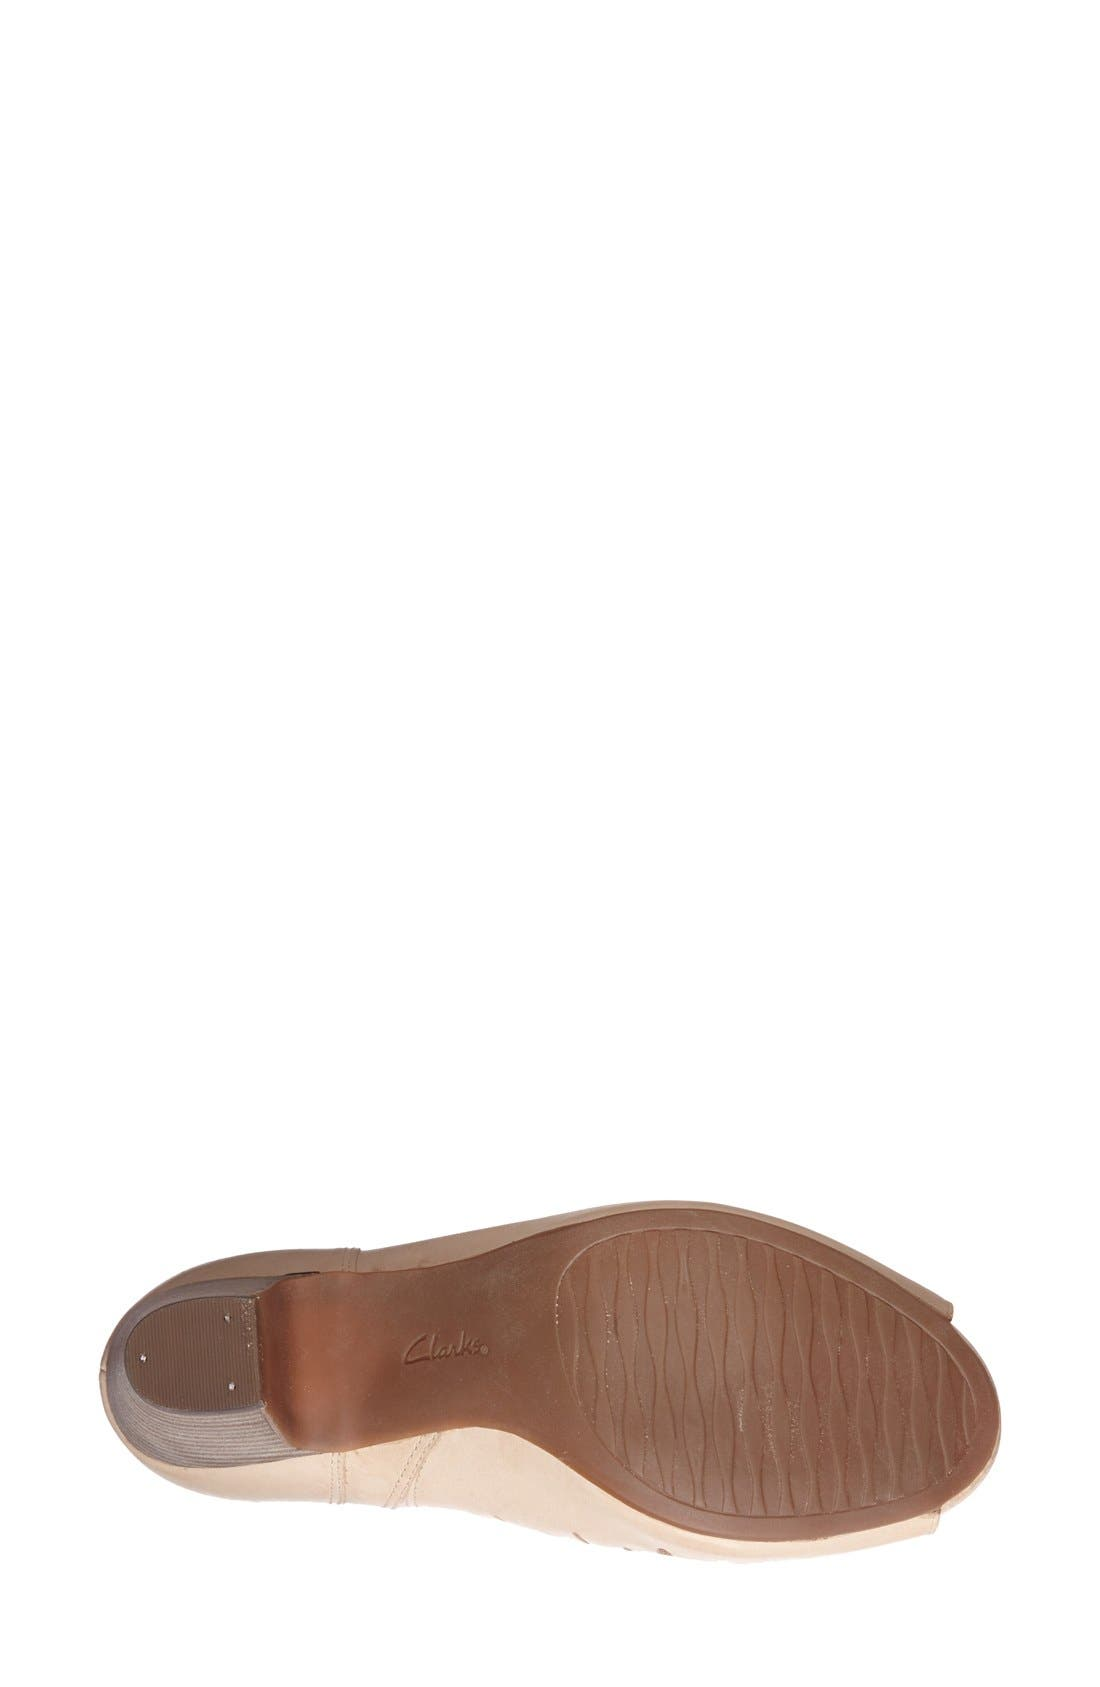 Alternate Image 4  - Clarks® 'Okena Posh' Peep-Toe Leather Sandal (Women)